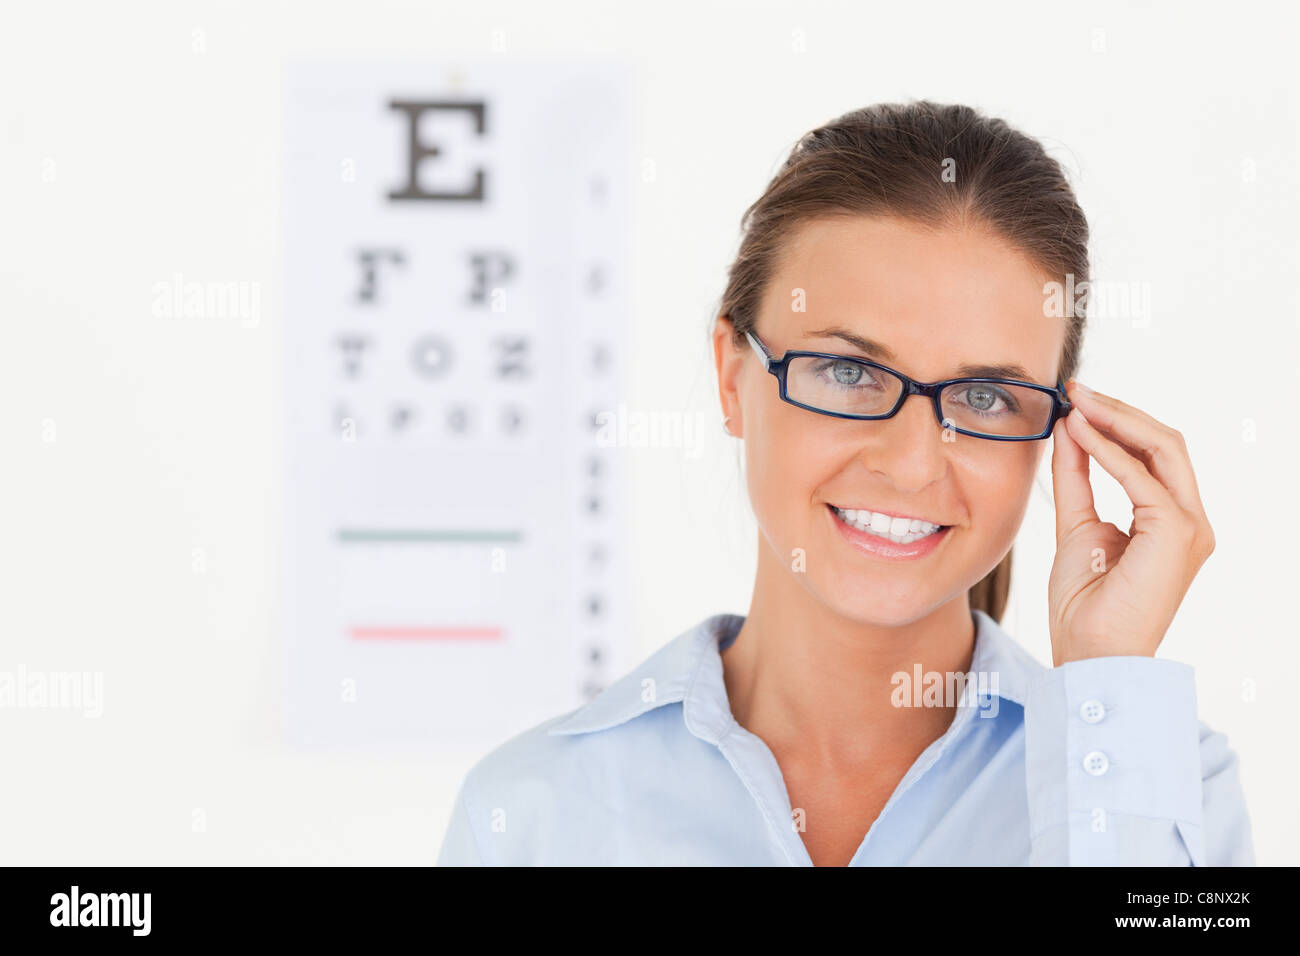 Close up of abrunette eye specialist wearing glasses looking into the camera - Stock Image